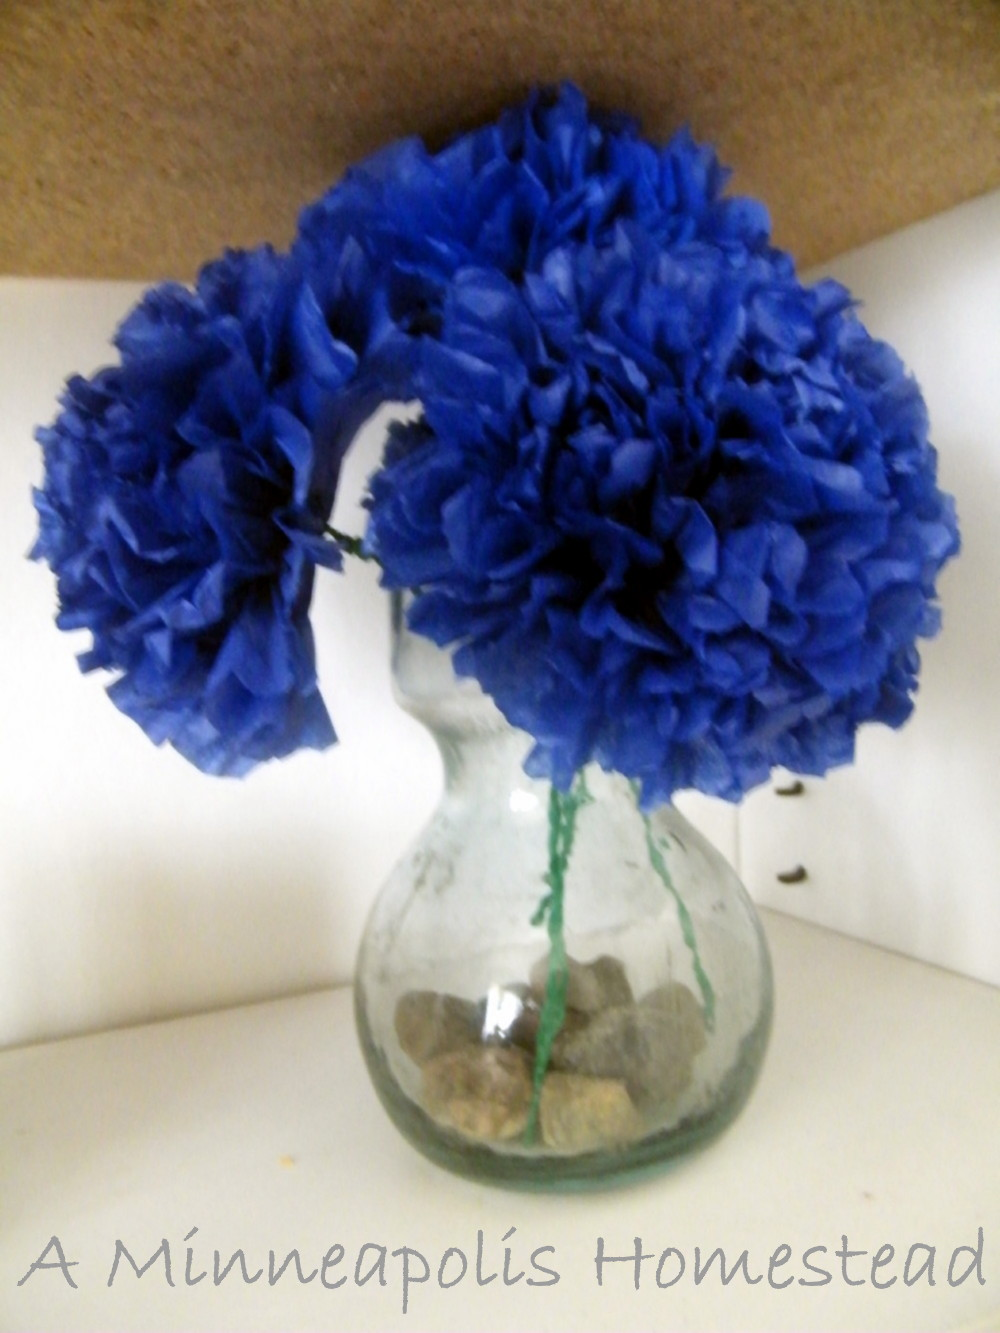 How to Make Paper Flowers  Tissue Flowers Tutorial   Oh You Crafty Gal How to Make Paper Flowers  Tissue Flowers Tutorial